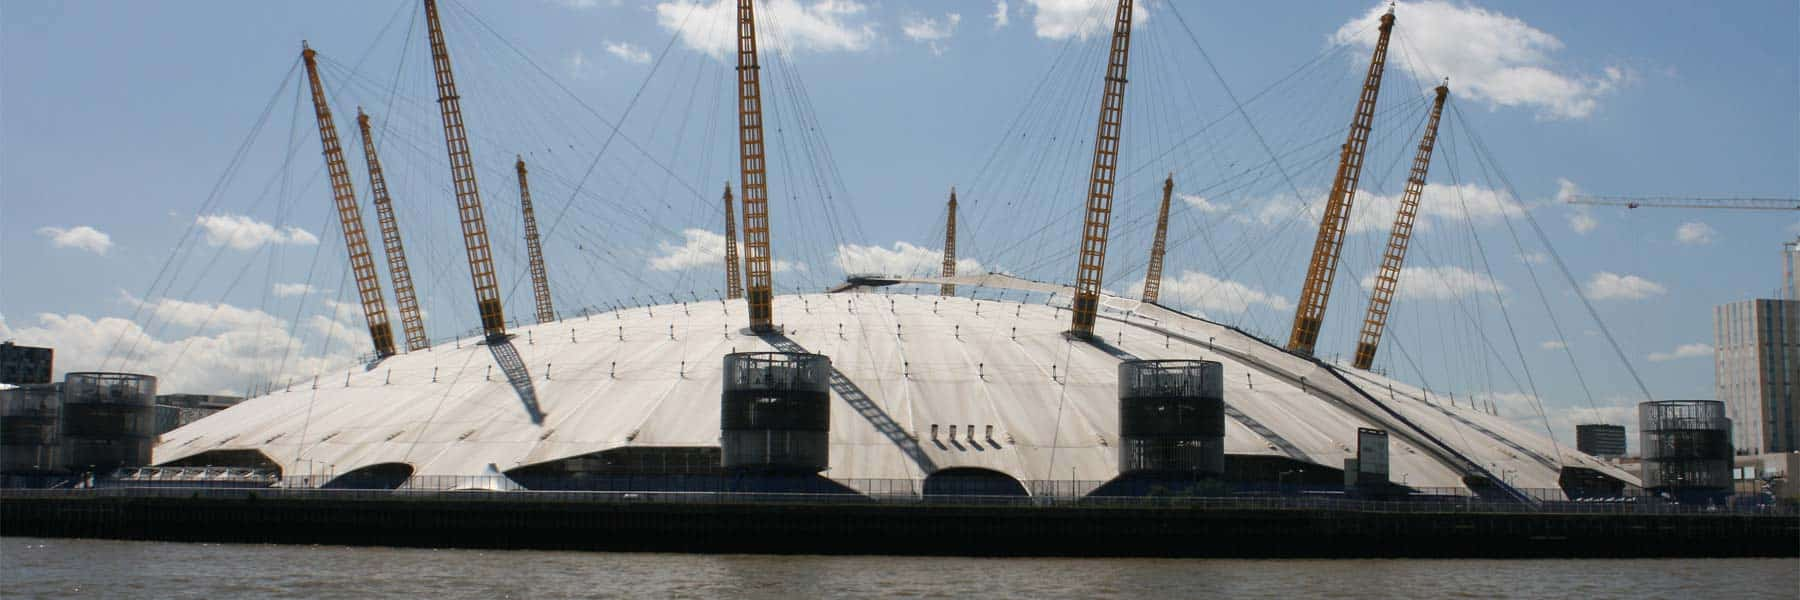 River Thames Transfers in London with Viscount Cruises